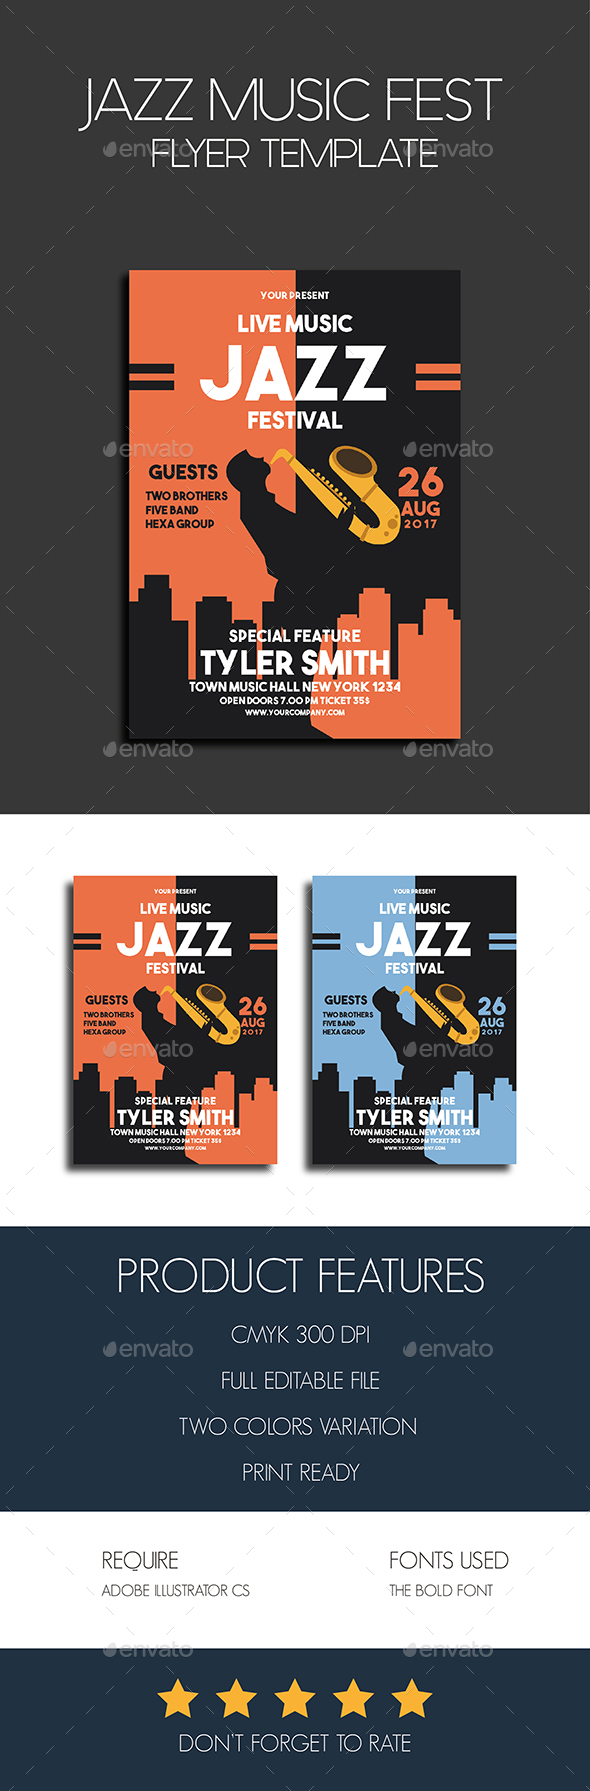 Jazz Music Fest Flyer Template - Events Flyers